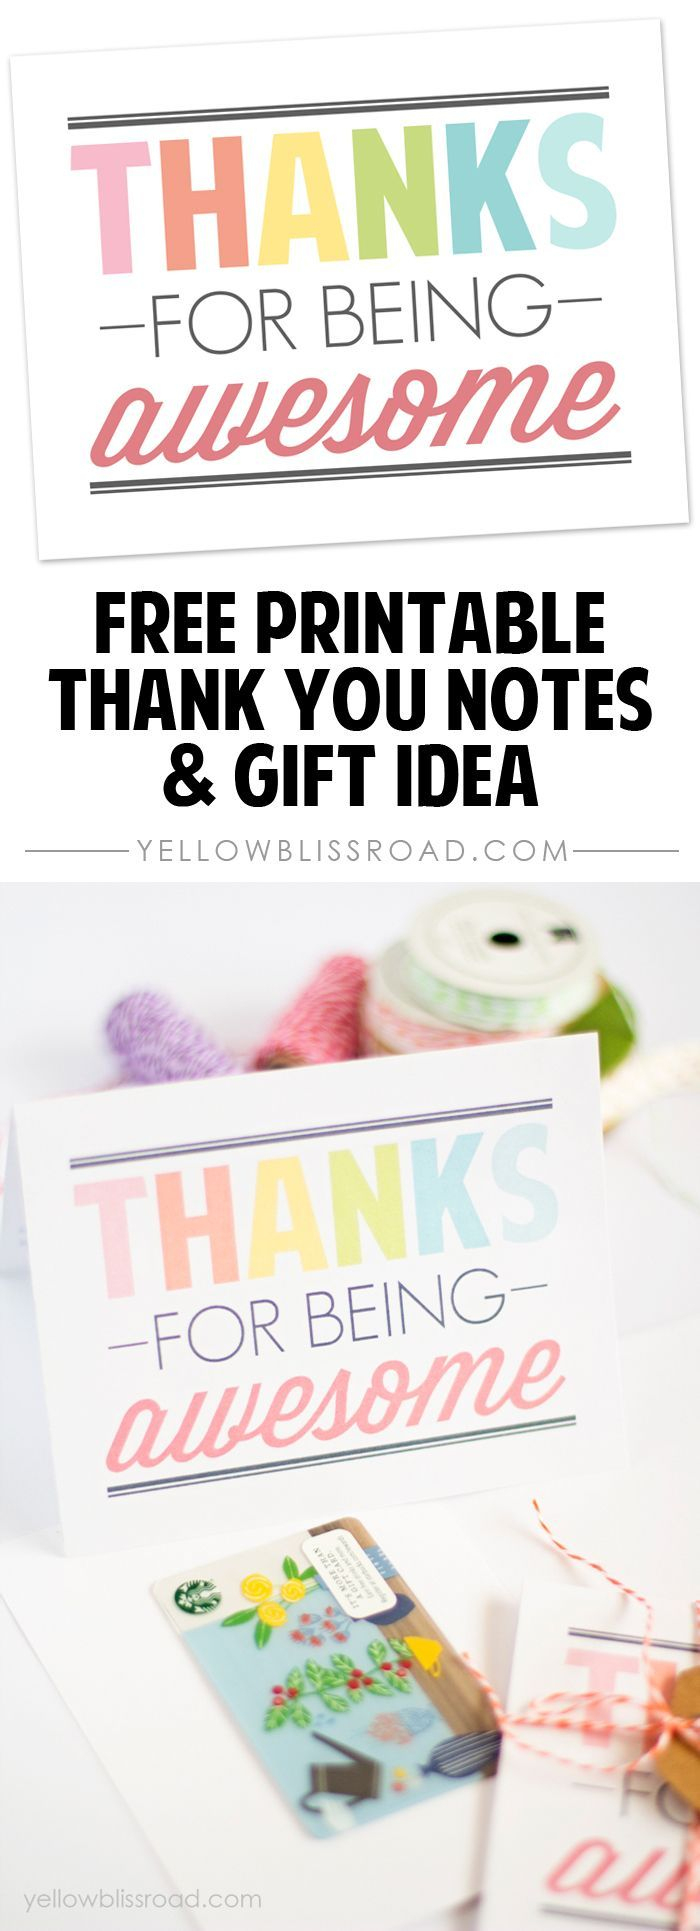 Free Printable Thank You Notes | Best Of Pinterest | Pinterest - Free Printable Volunteer Thank You Cards